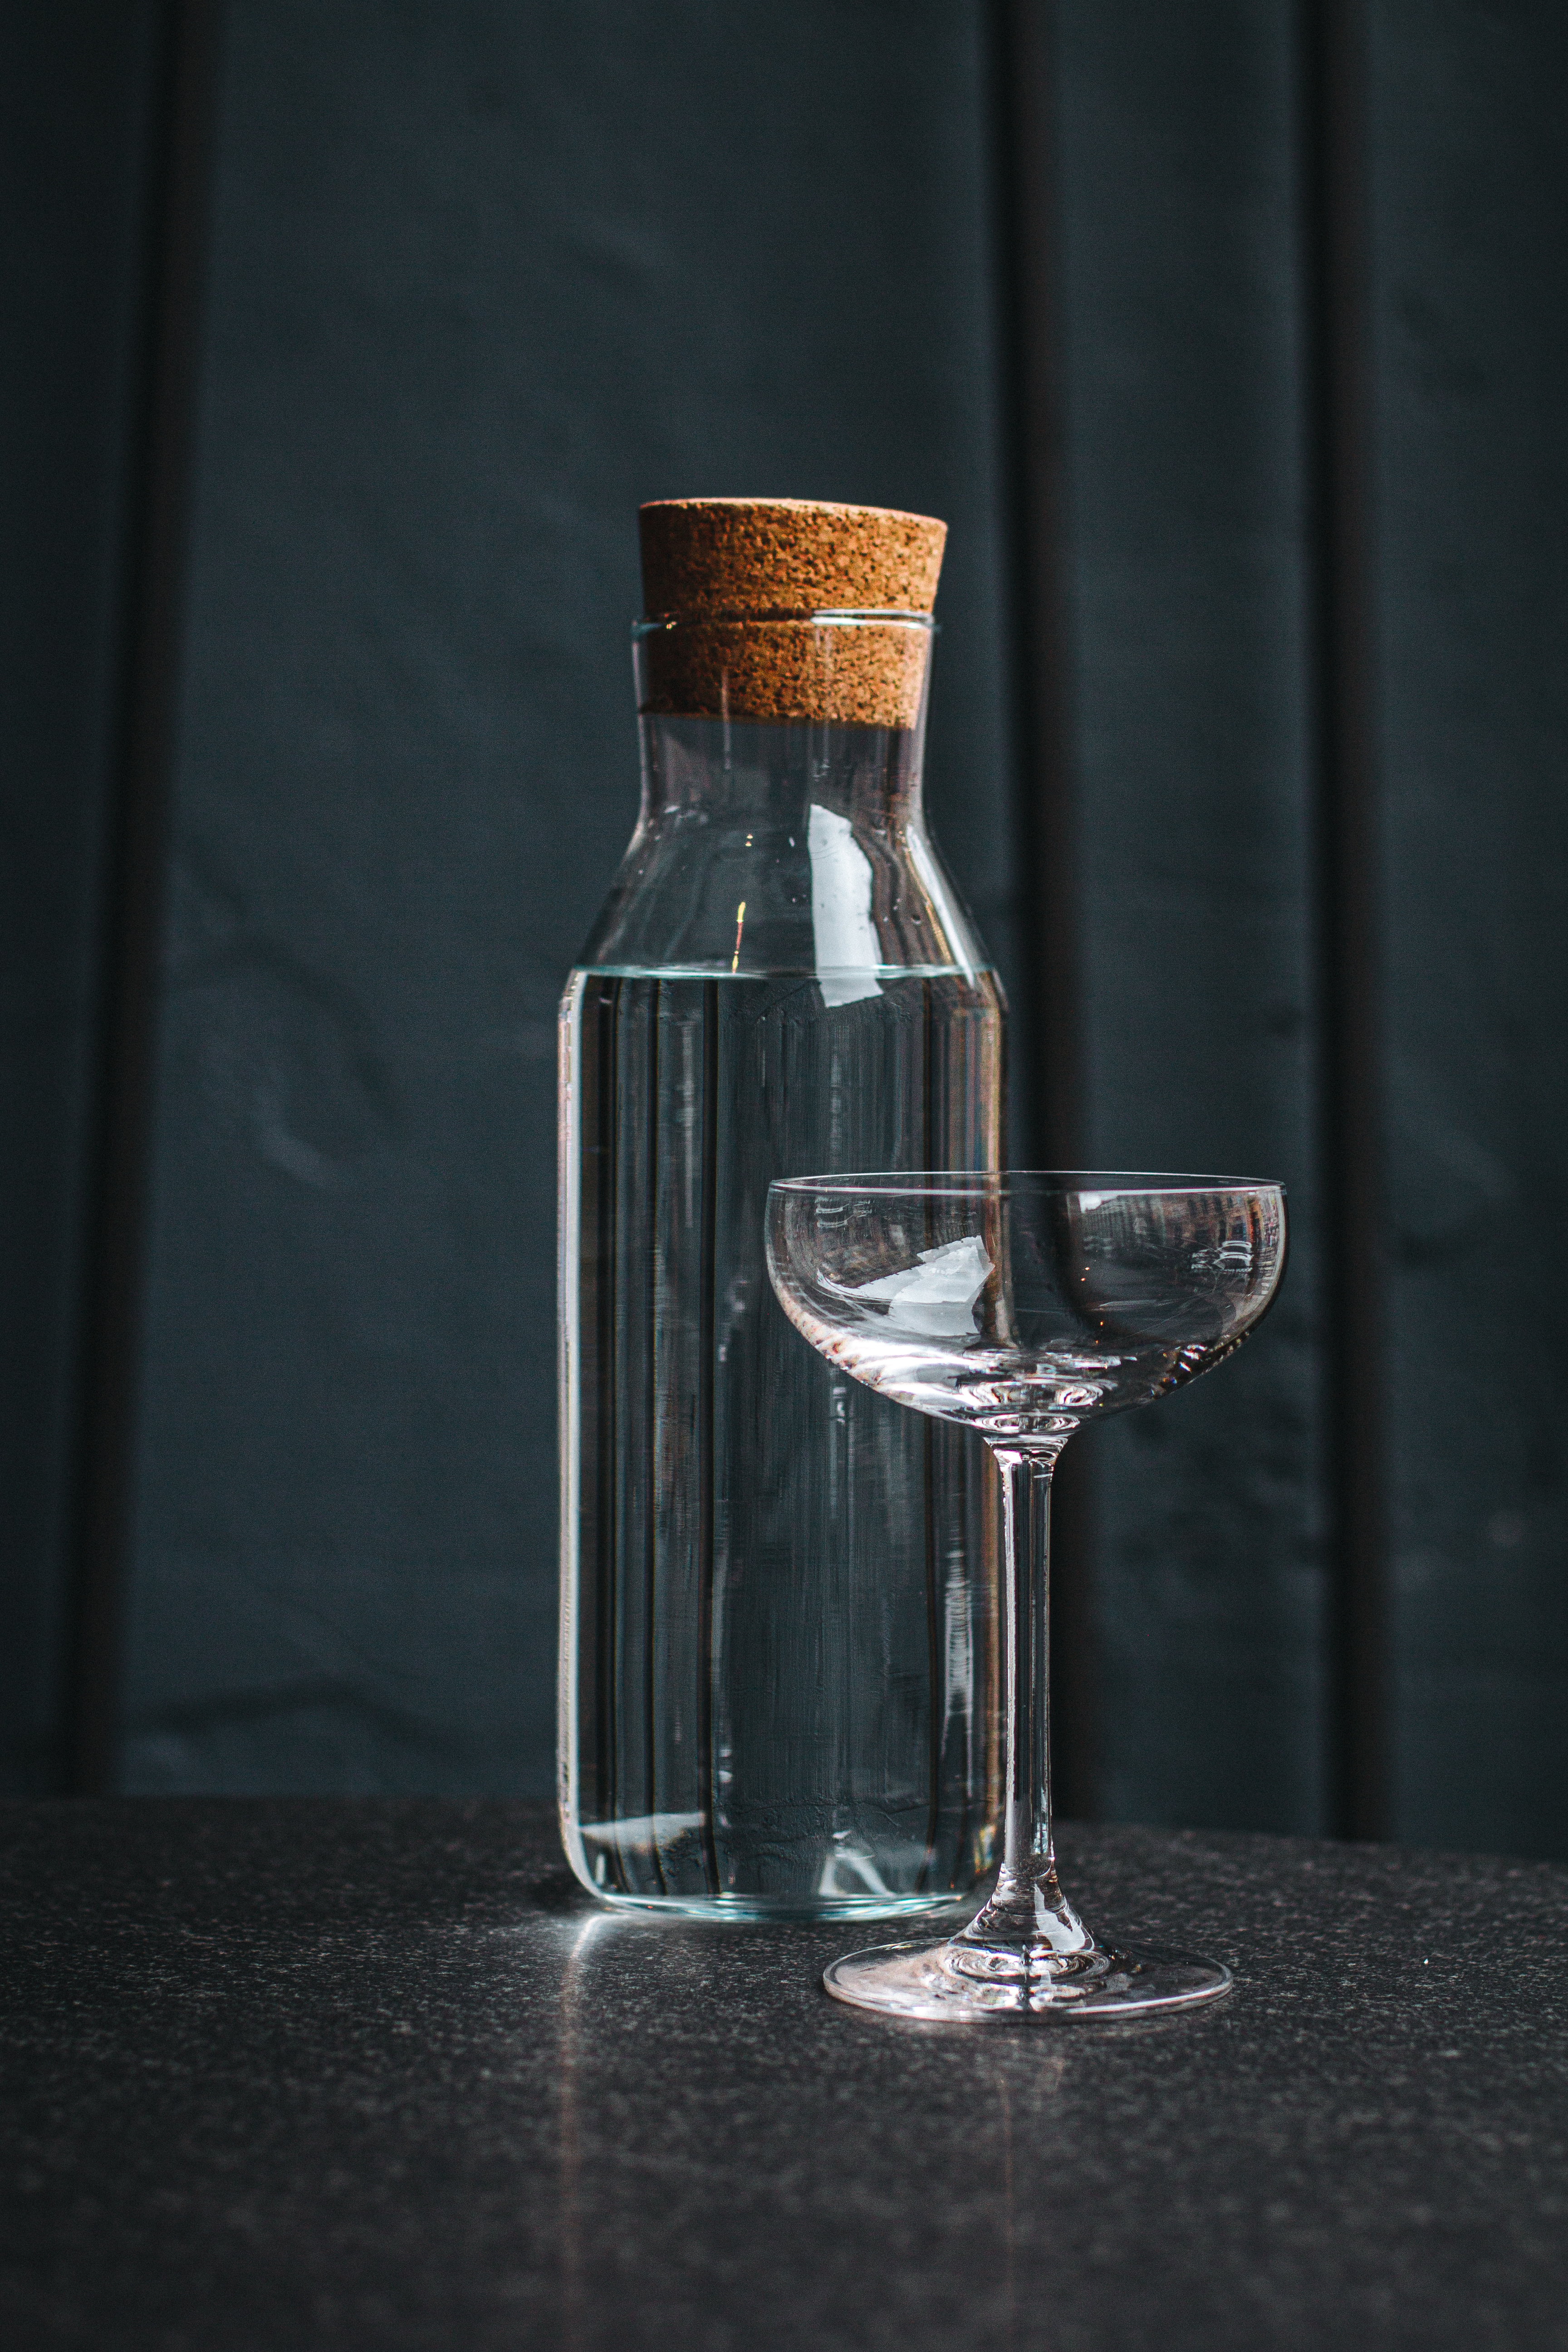 clear glass jar with cork stopper